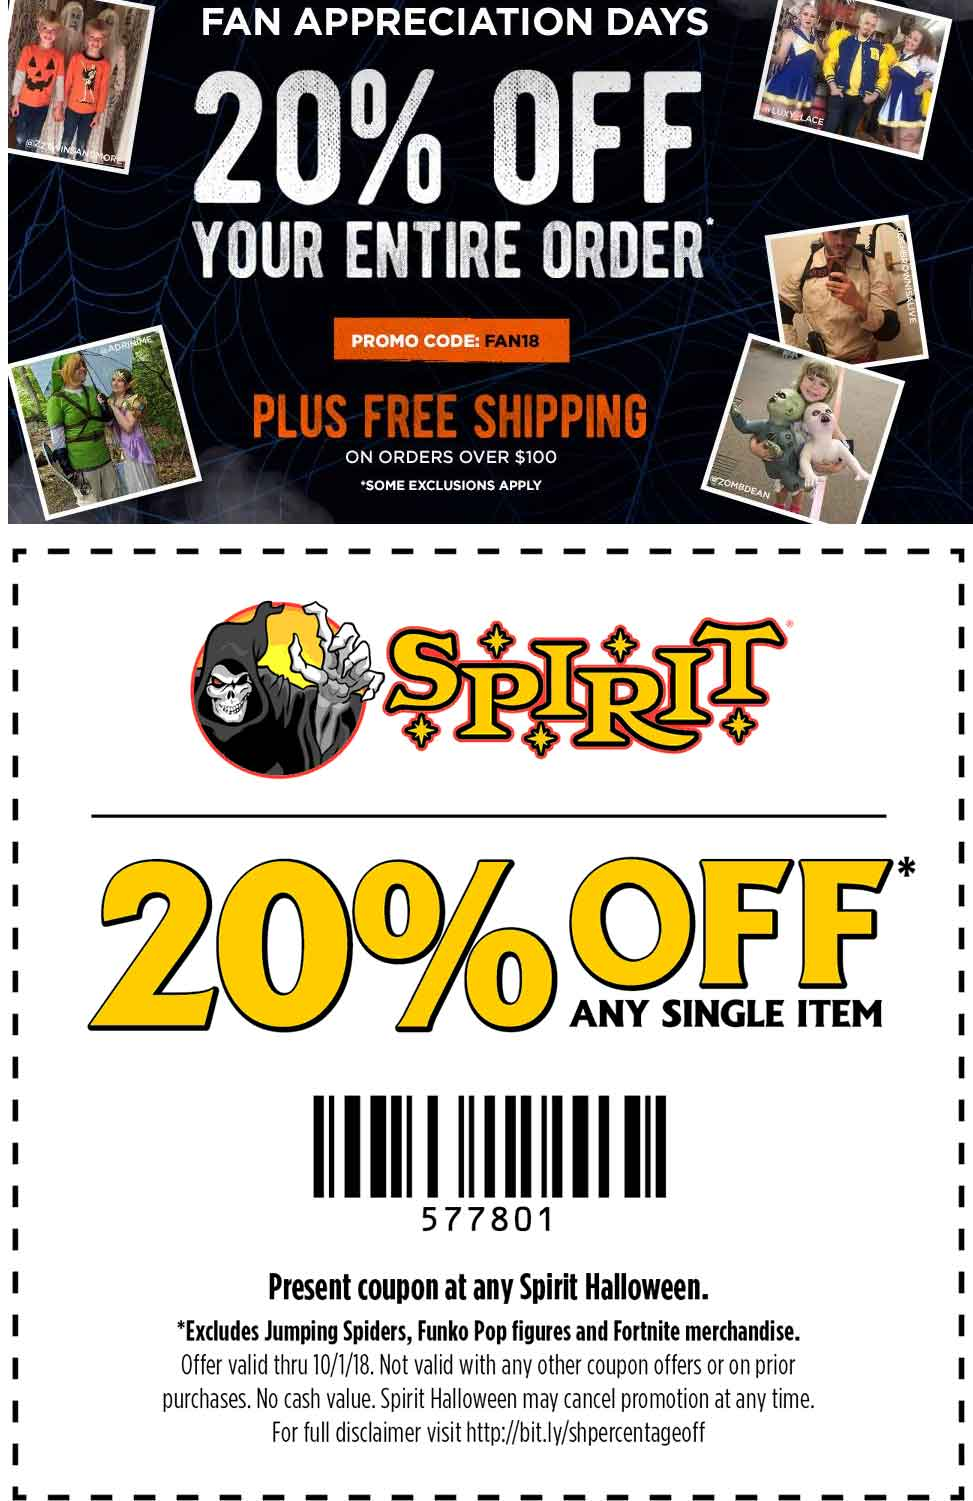 spirithalloweencom promo coupon 20 off a single item today at spirit halloween